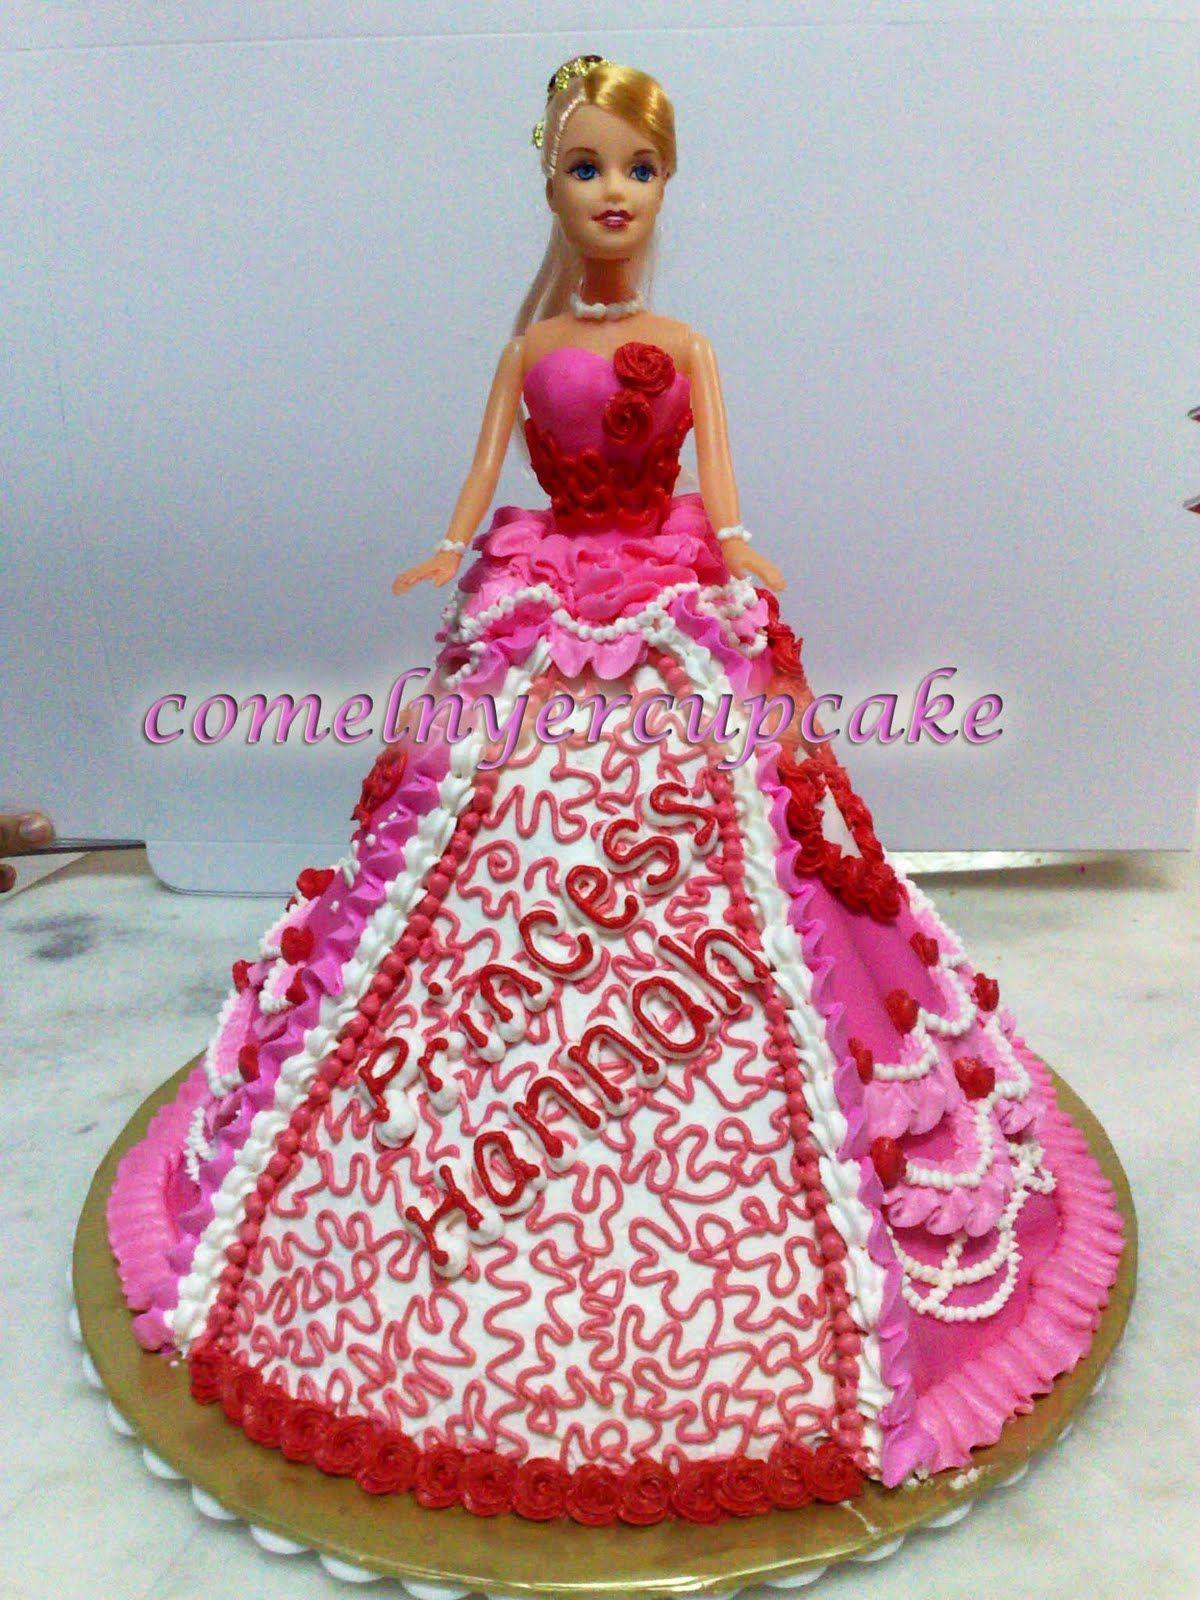 BArbie cakes ideas on Pinterest by beaner24 | Barbie Cake ...